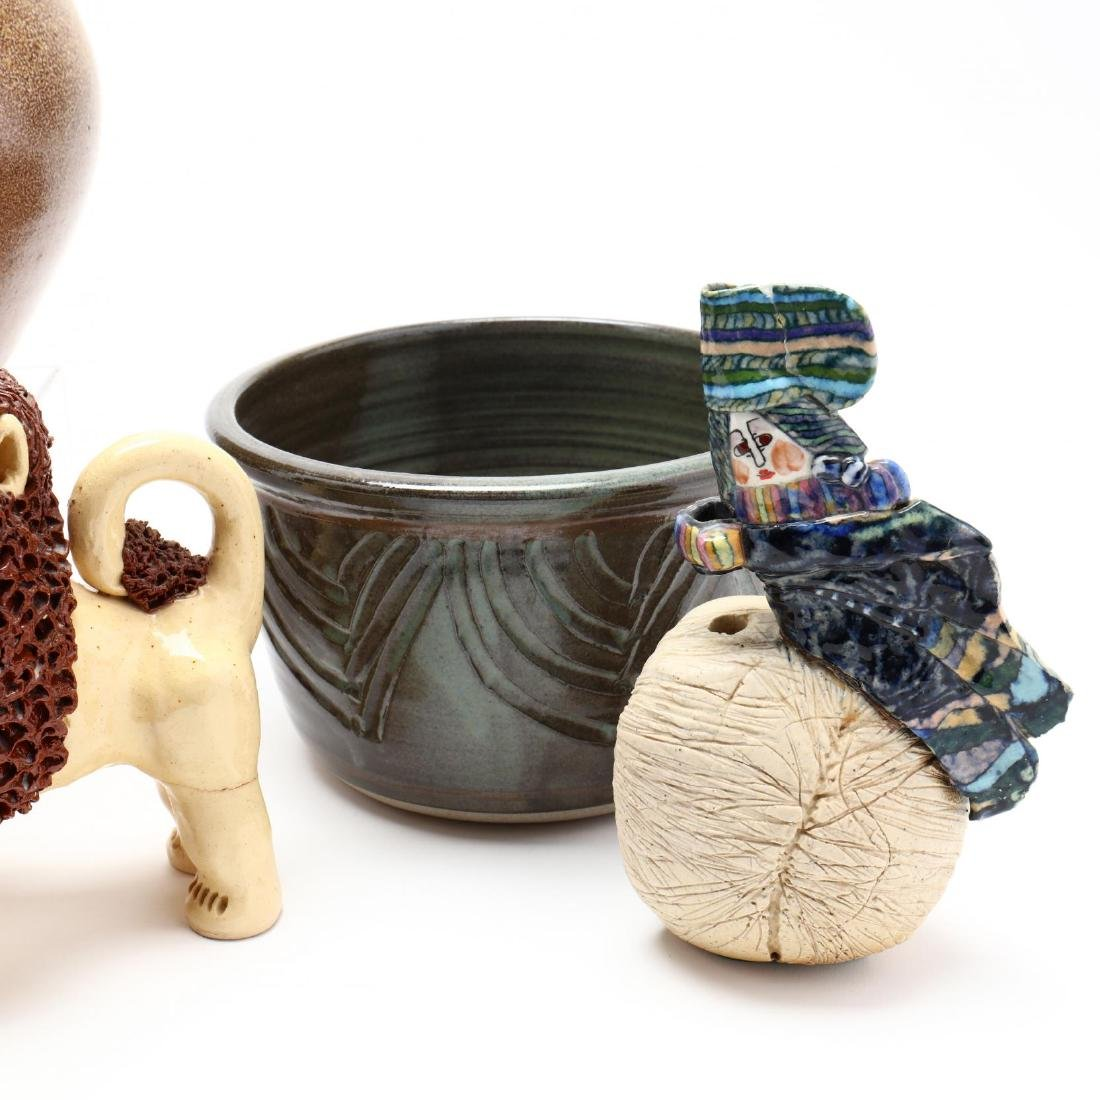 An Assortment of Contemporary Southern Pottery - 4